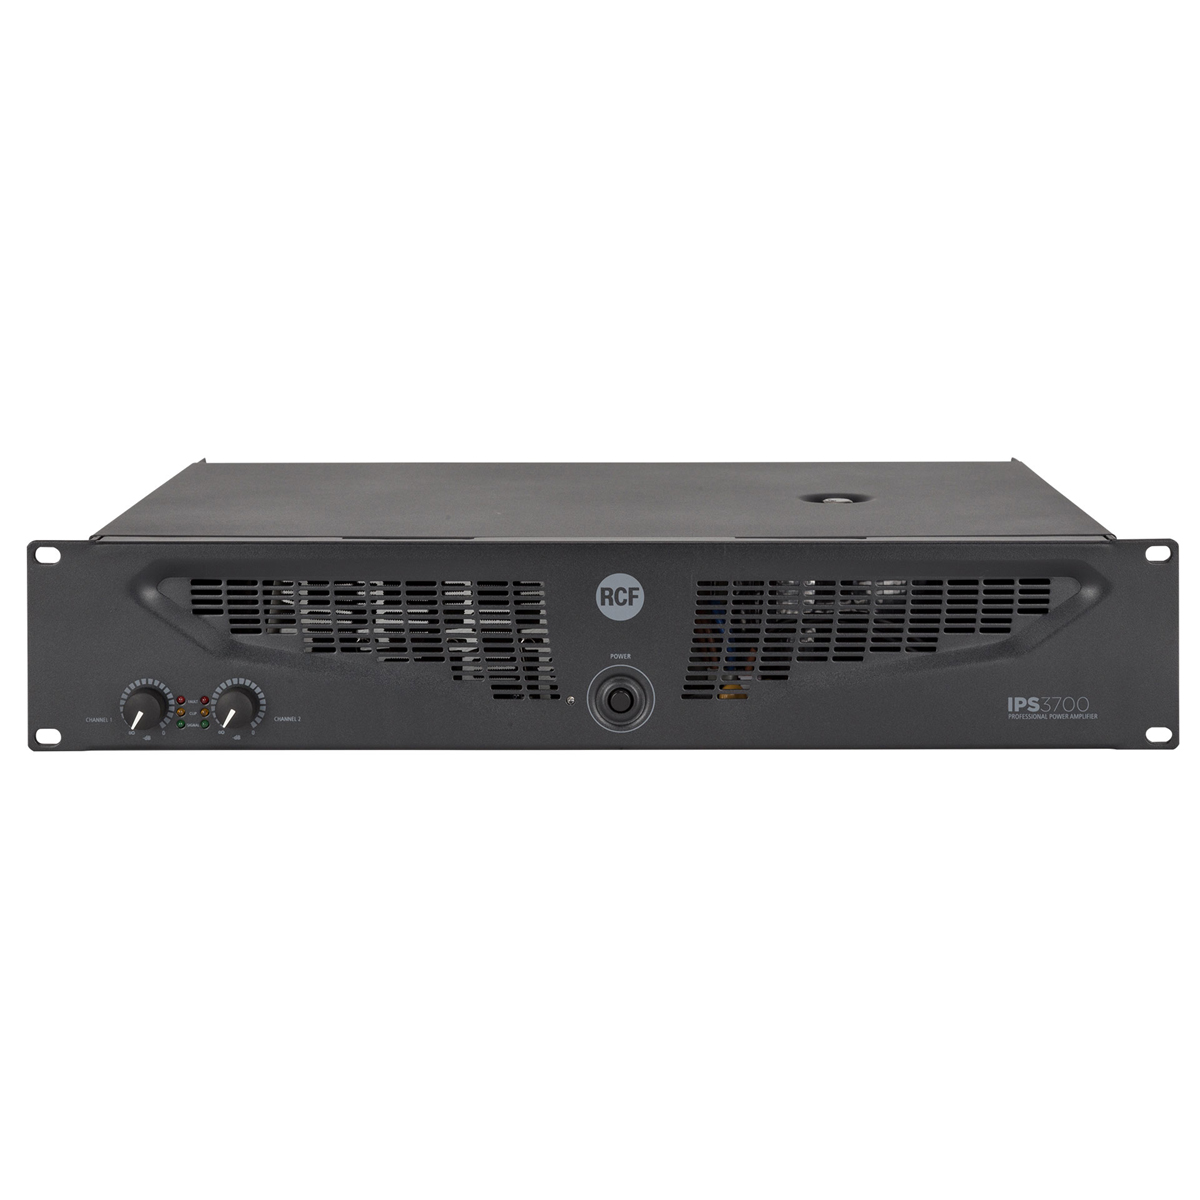 Rcf Ips 3700 2 X 1500 W Class H Professional Power Amplifier Sonic Ab Amplifiers